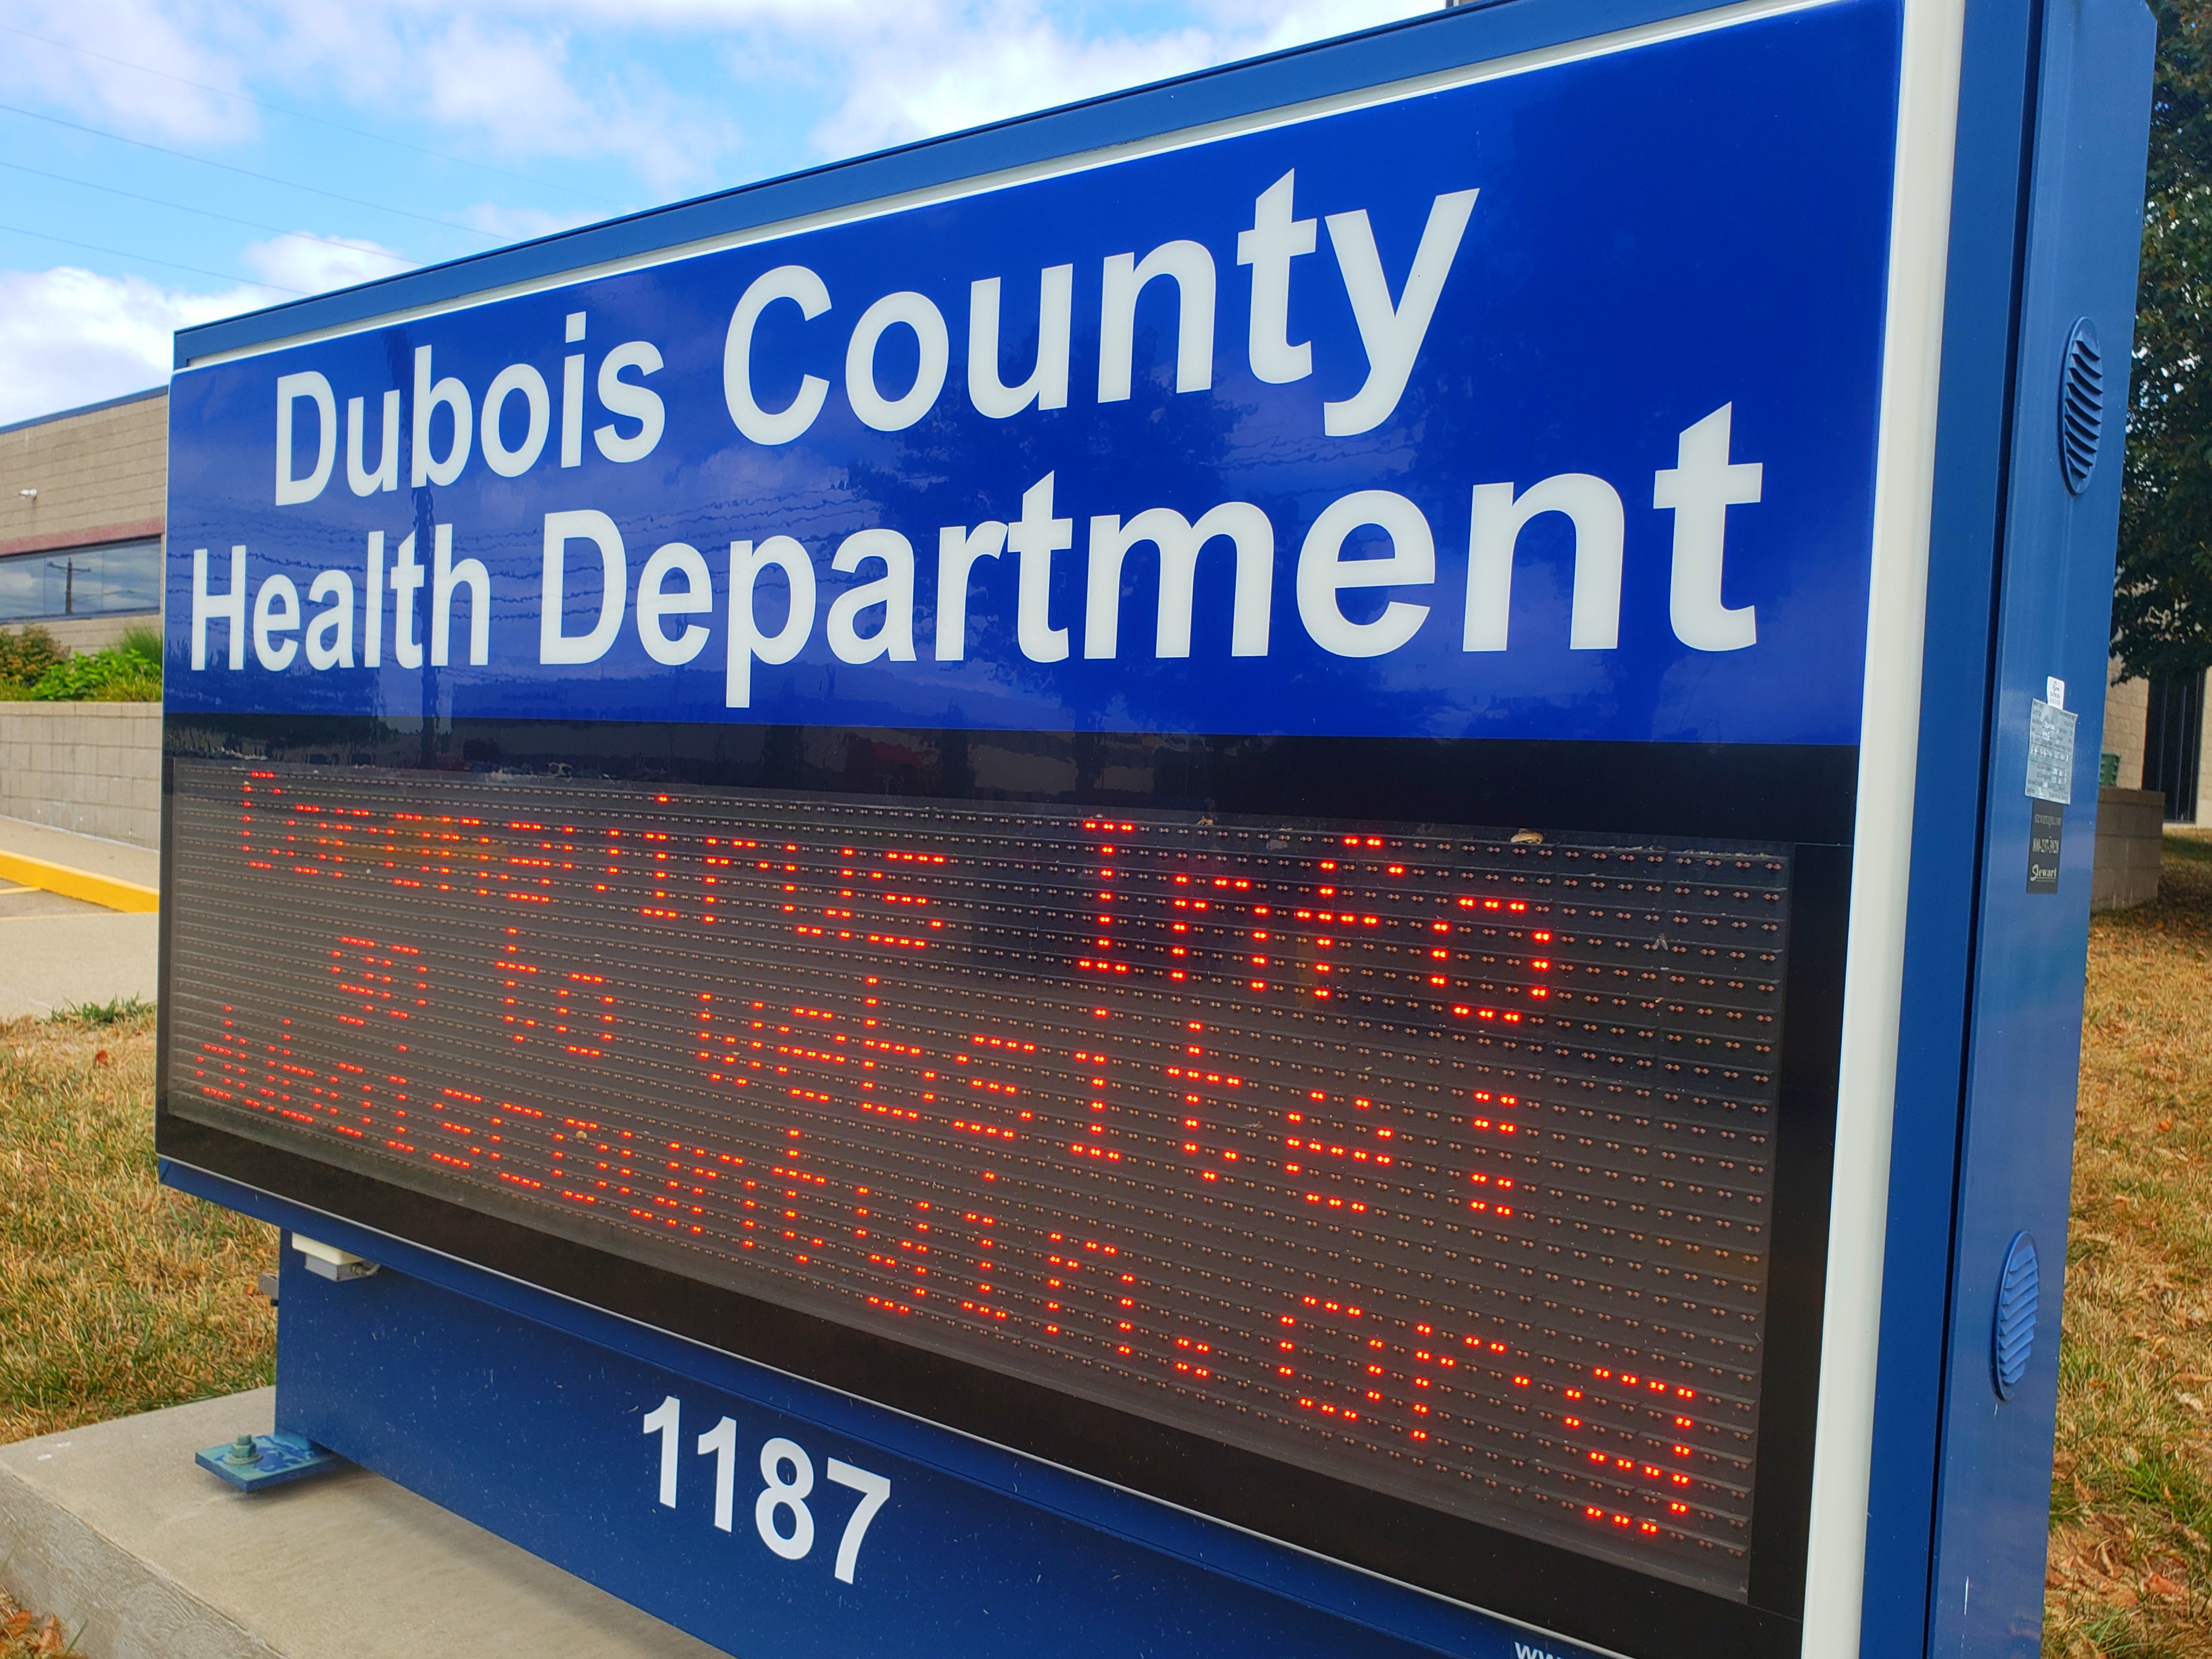 35 New Cases of COVID-19 Reported in Dubois County Wednesday, Perry County Goes to CODE RED